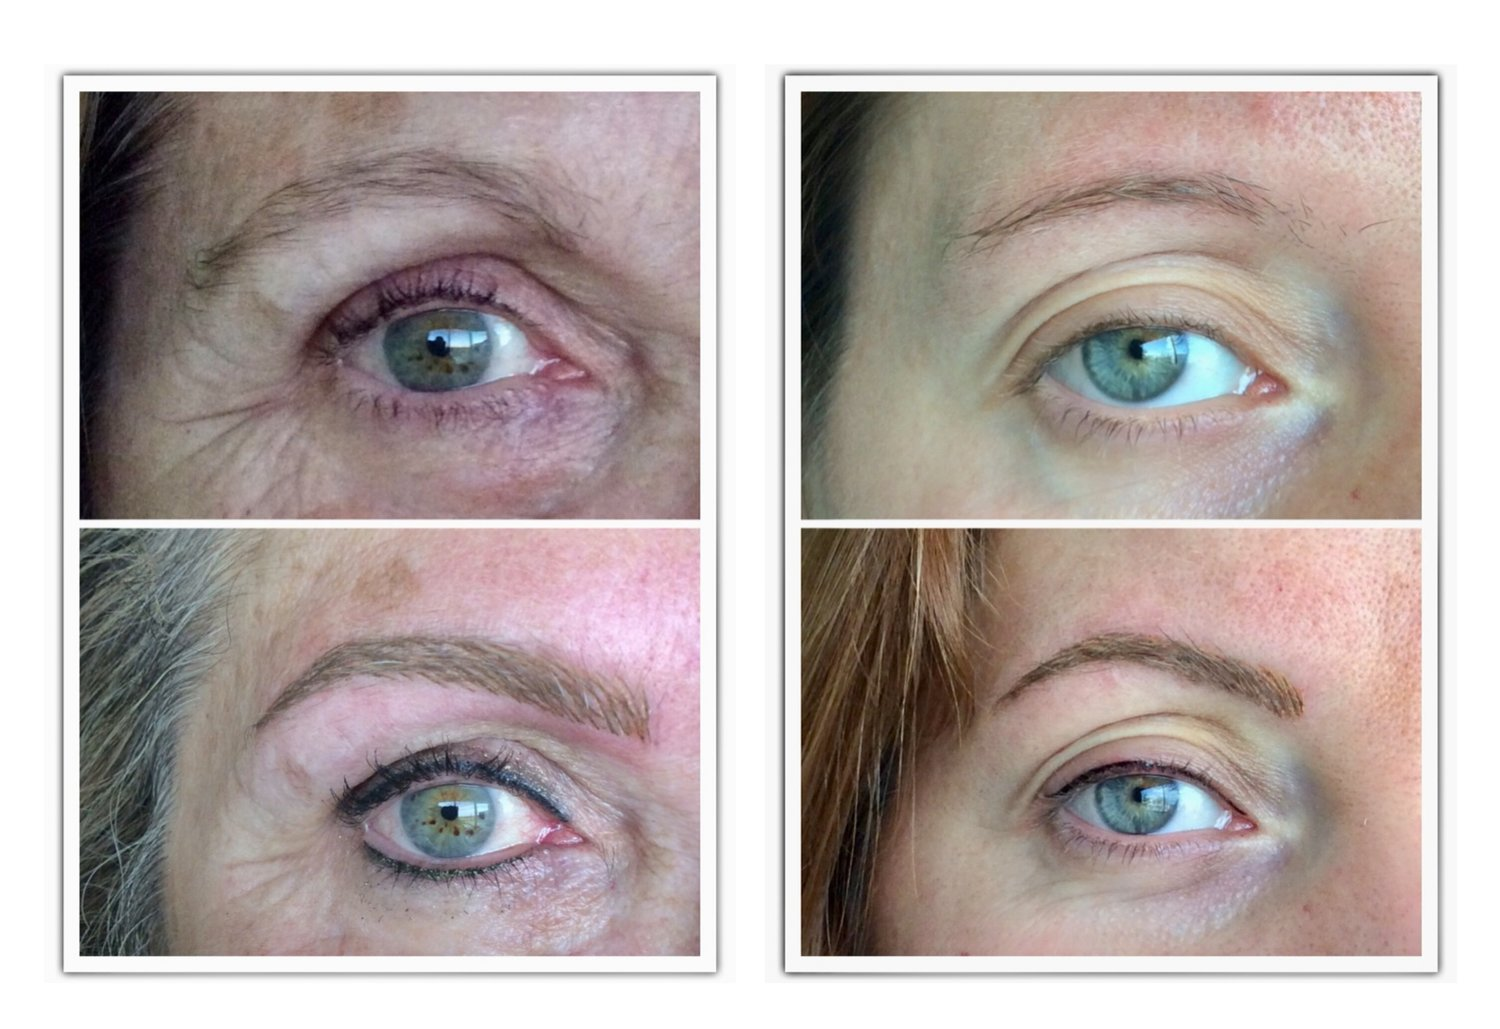 With a simple thickness of eyelashes, without lengthening the line too much, we see an important change in brightness and rejuvenation in the look.